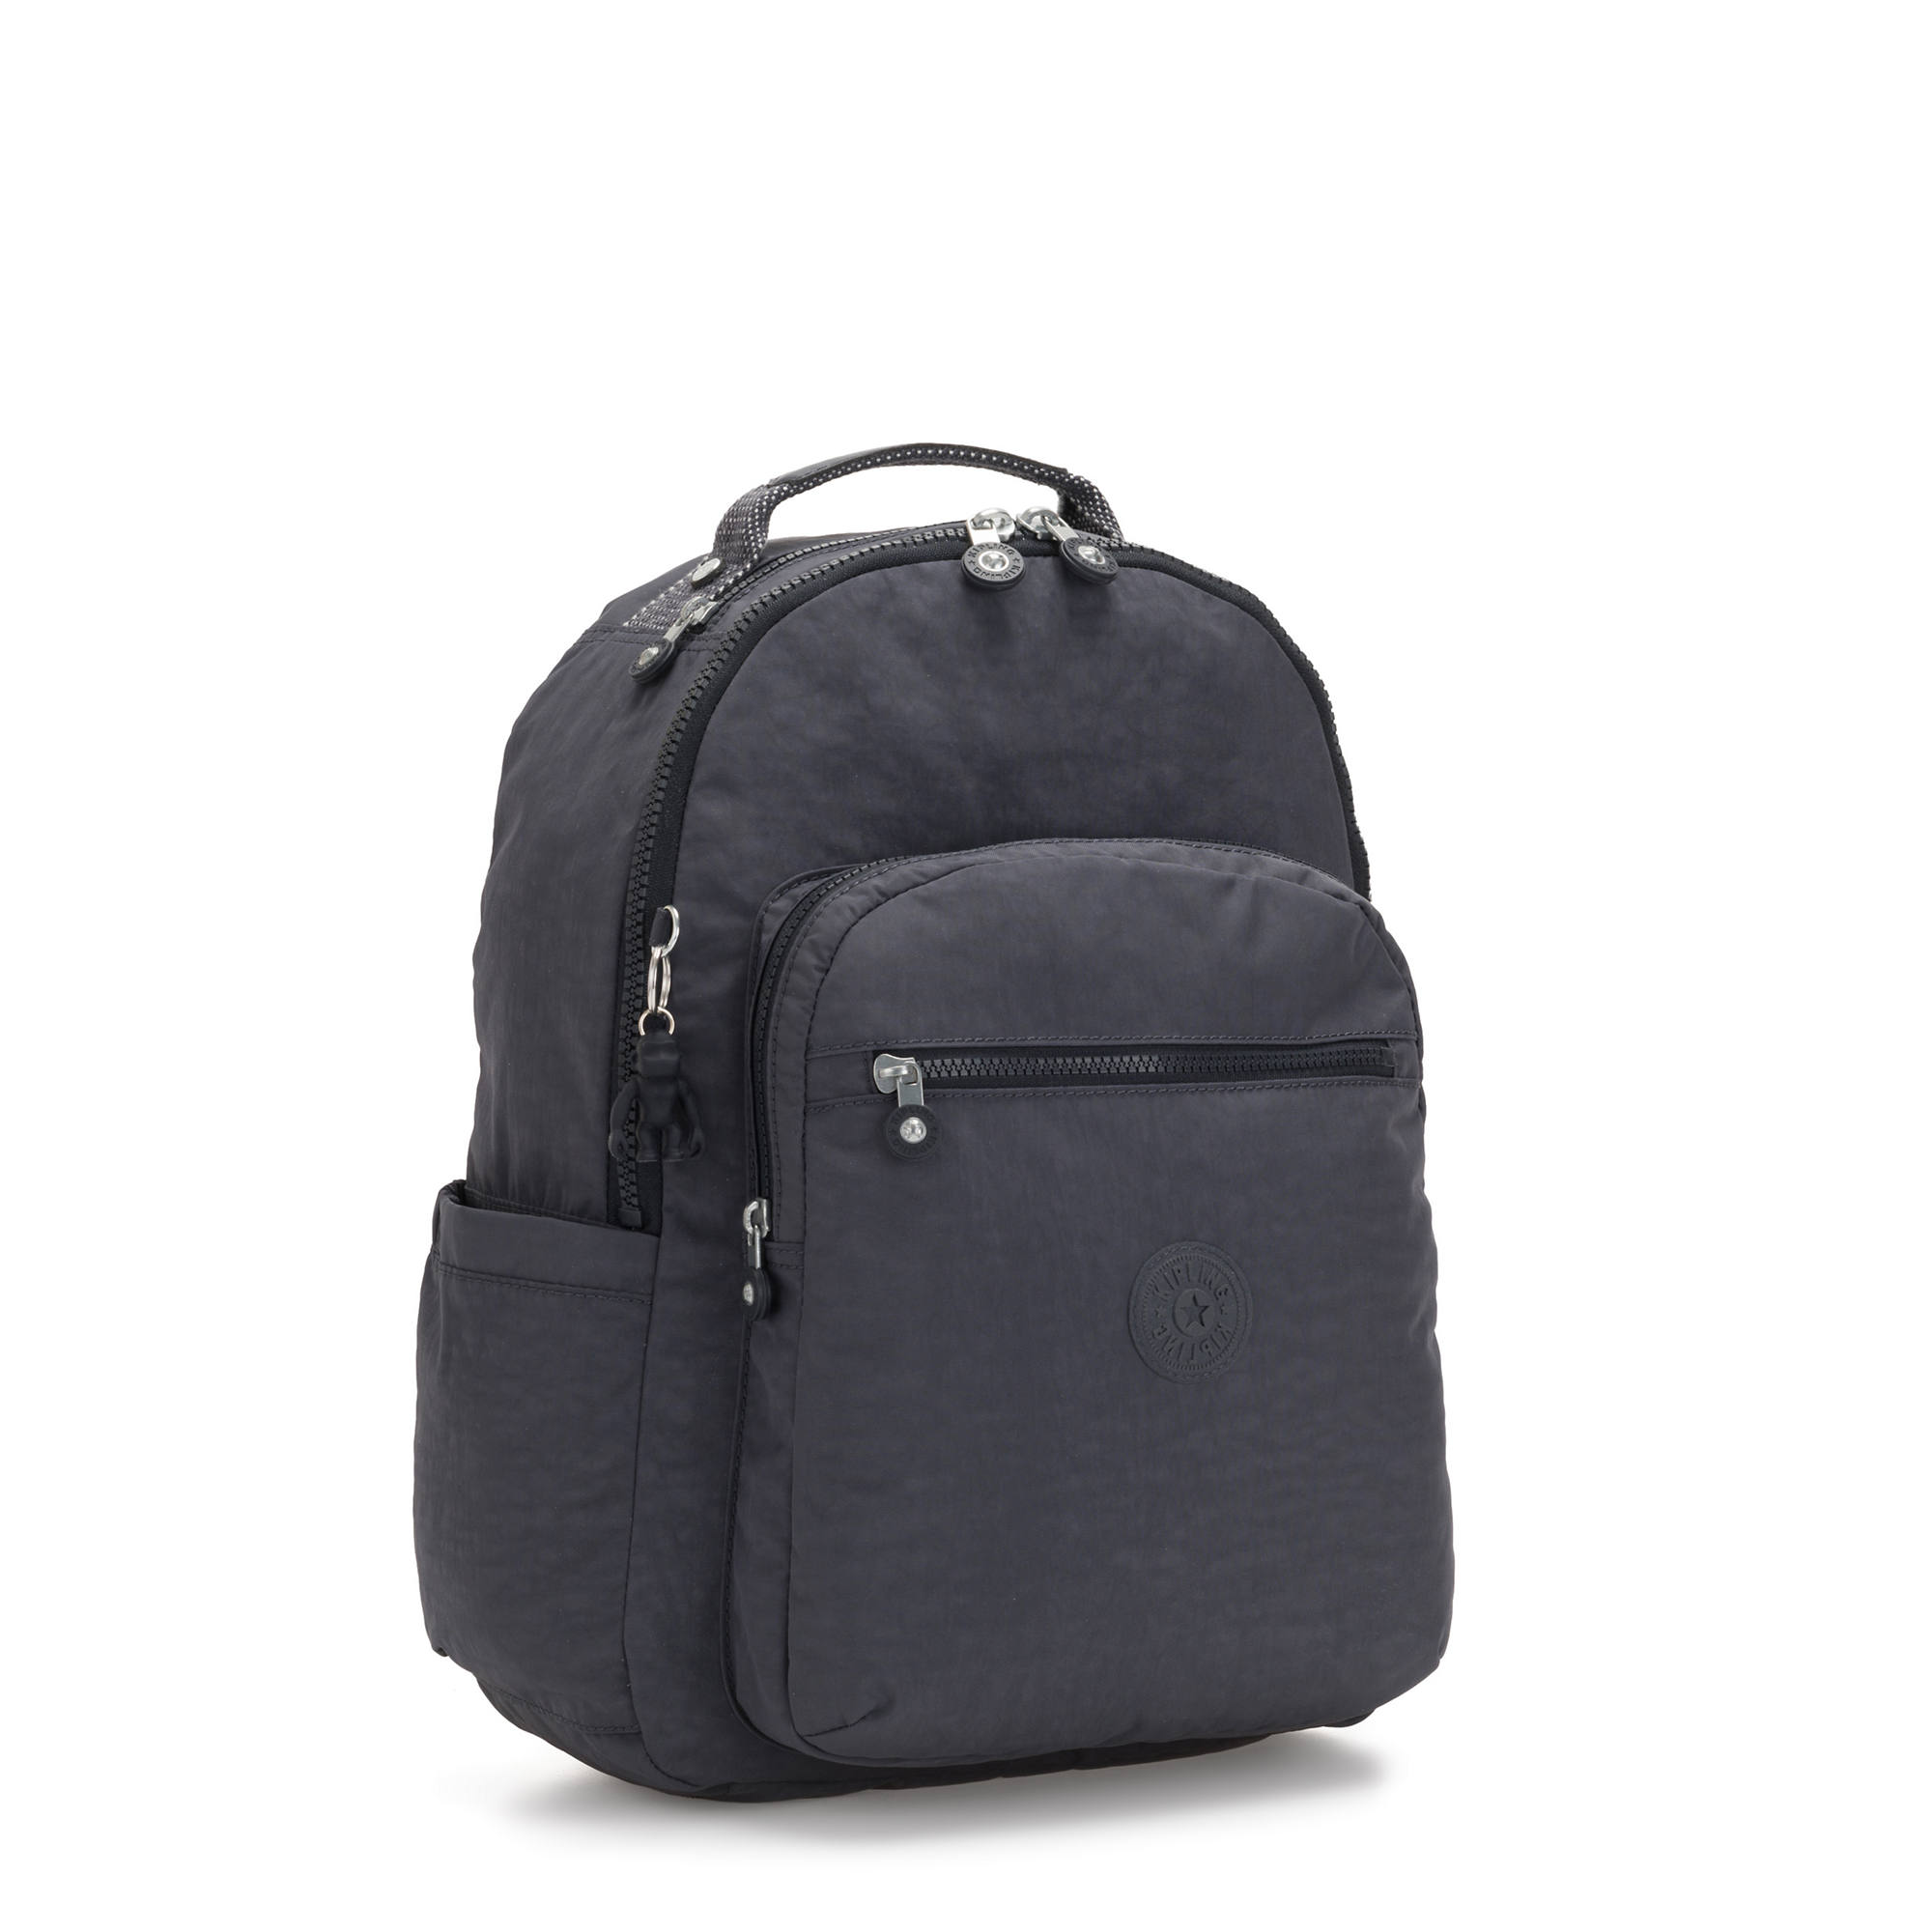 Kipling Clas Seoul Large Laptop Backpack